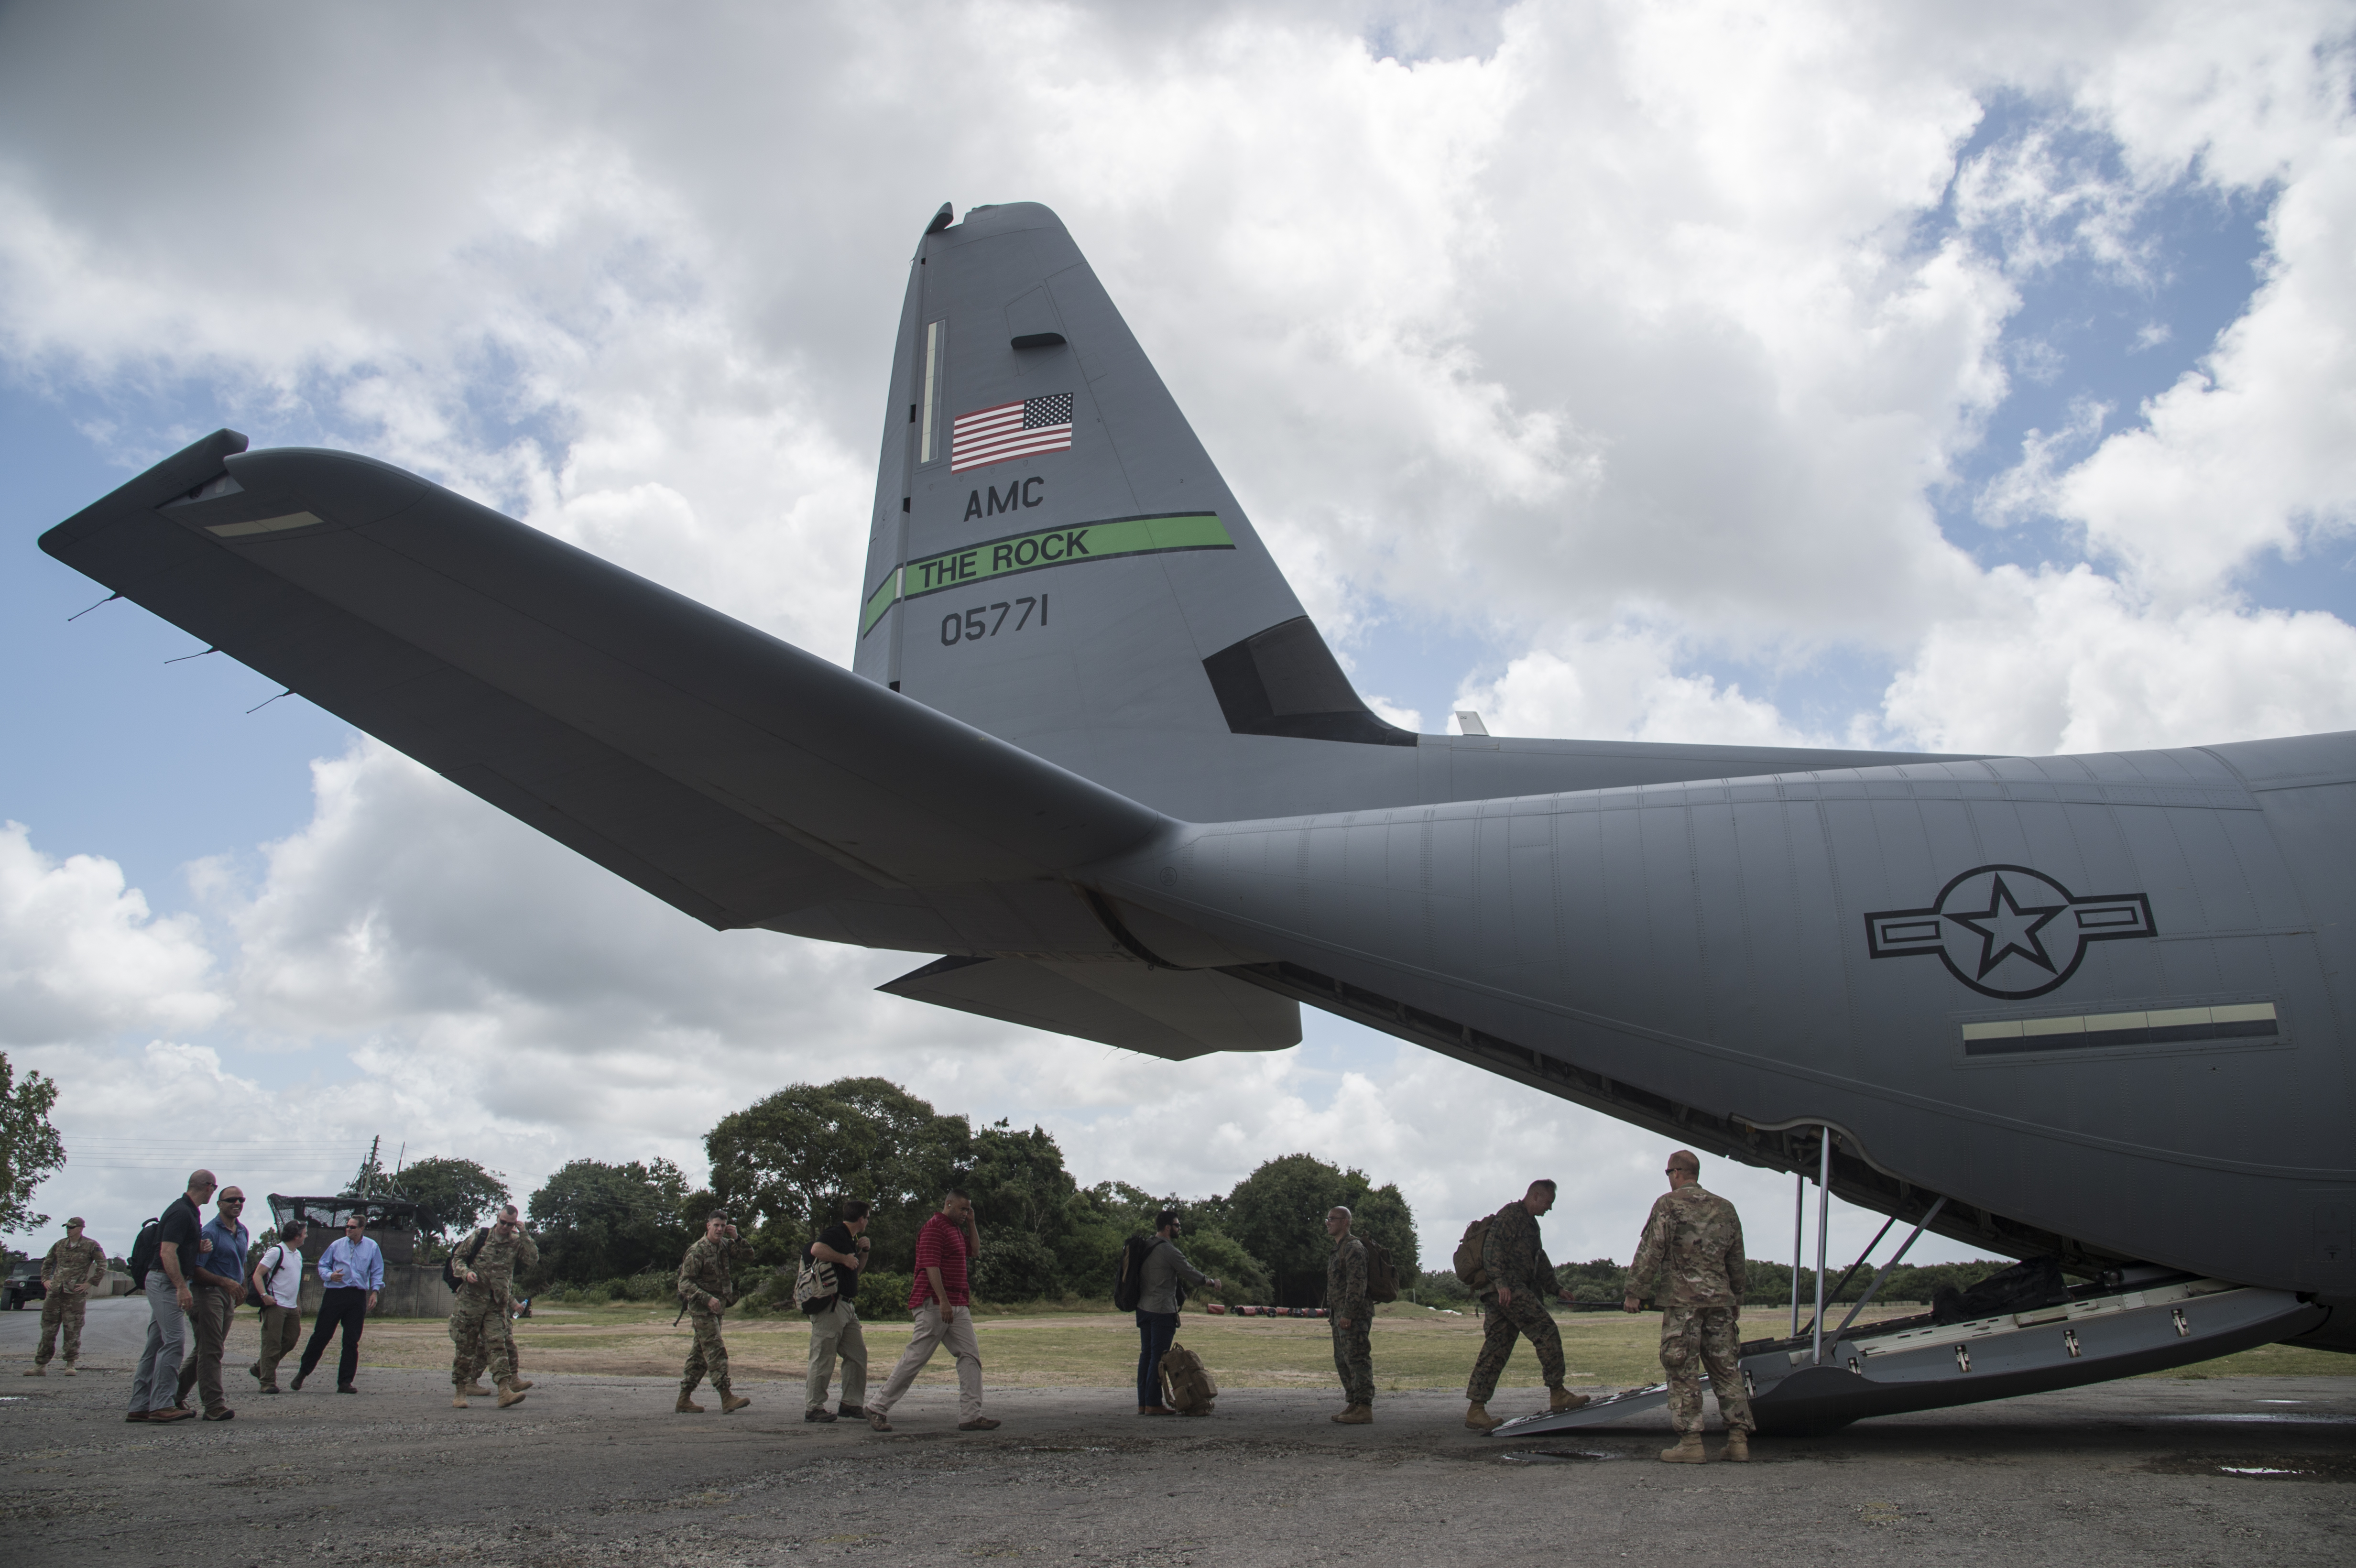 A congressional delegation (CODEL) and military escorts board a C-130J Hercules on Aug. 27, 2017, as they visit various locations within the Combined Joint Task Force - Horn of Africa area of responsibility. During their three-day visit, the CODEL met U.S. service members and learned more about the U.S. military mission in East Africa. The CODEL included the following congressmen, all of whom are on the House Armed Service Committee; Rep. Austin Scott (R-Ga.) representing the 8th District of Georgia; Rep. Jimmy Panetta (D-Calif.) representing the 20th District of California; and Rep. Marc Veasey (D-Texas) representing the 33rd District of Texas. (U.S. Air National Guard photo by Tech. Sgt. Joe Harwood)